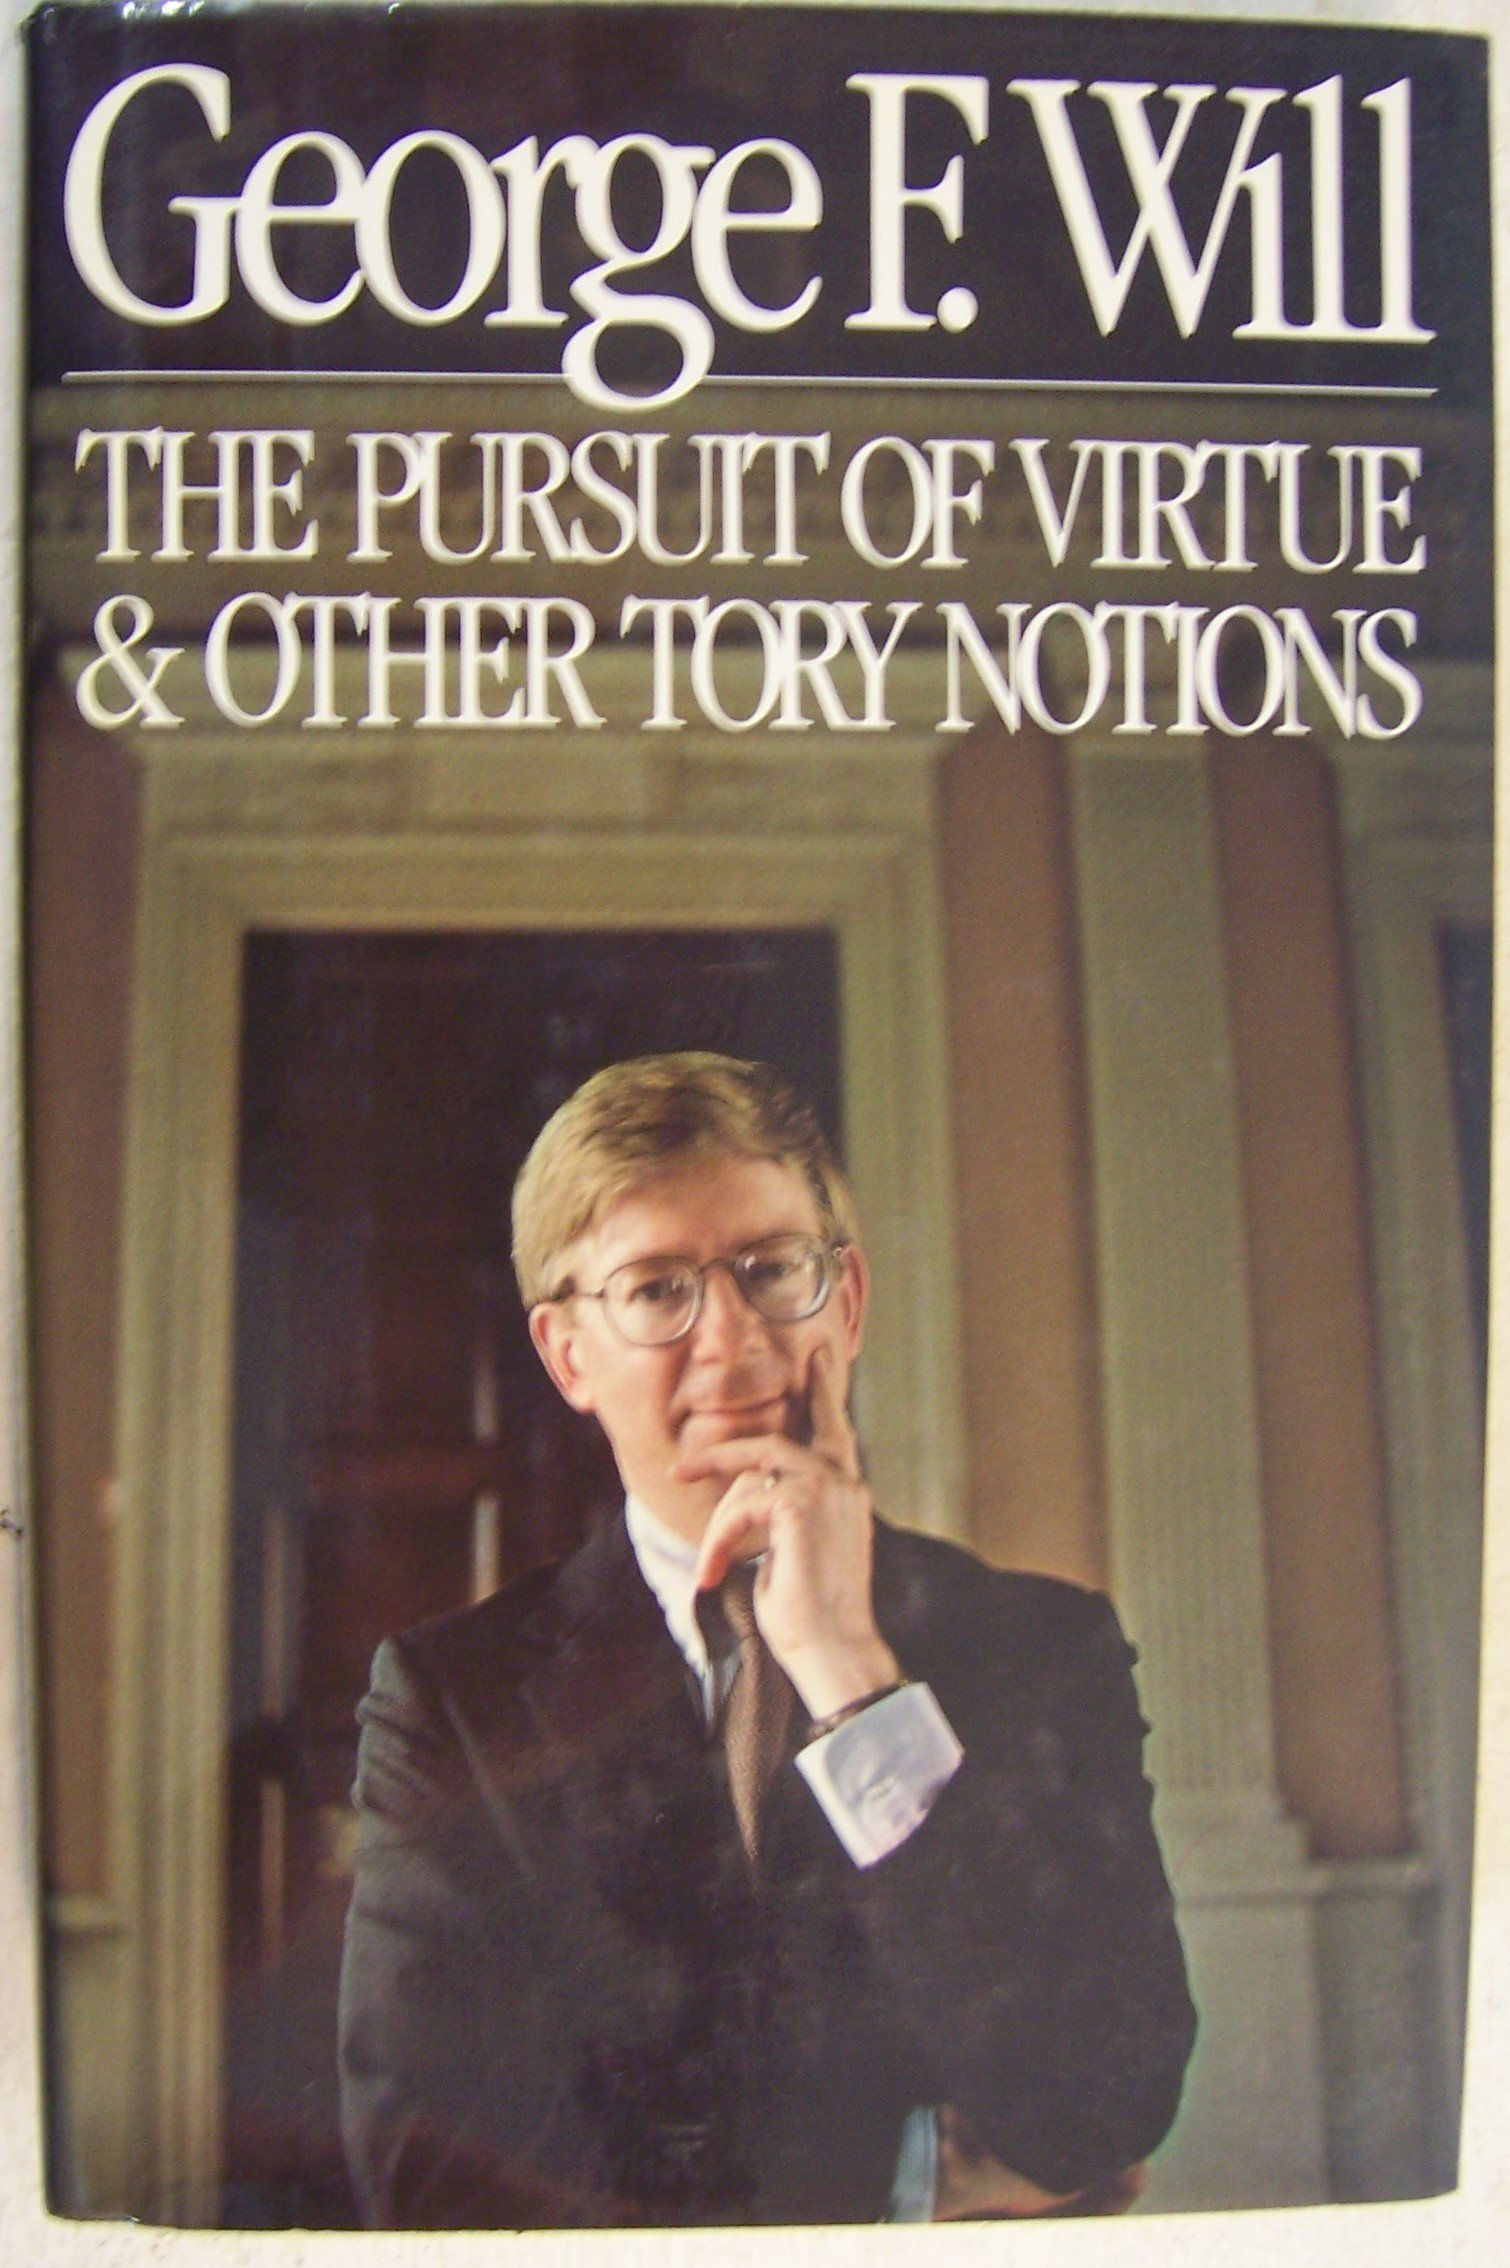 The Pursuit of Virtue and Other Tory Notions: George Will: 9780671423933:  Amazon.com: Books